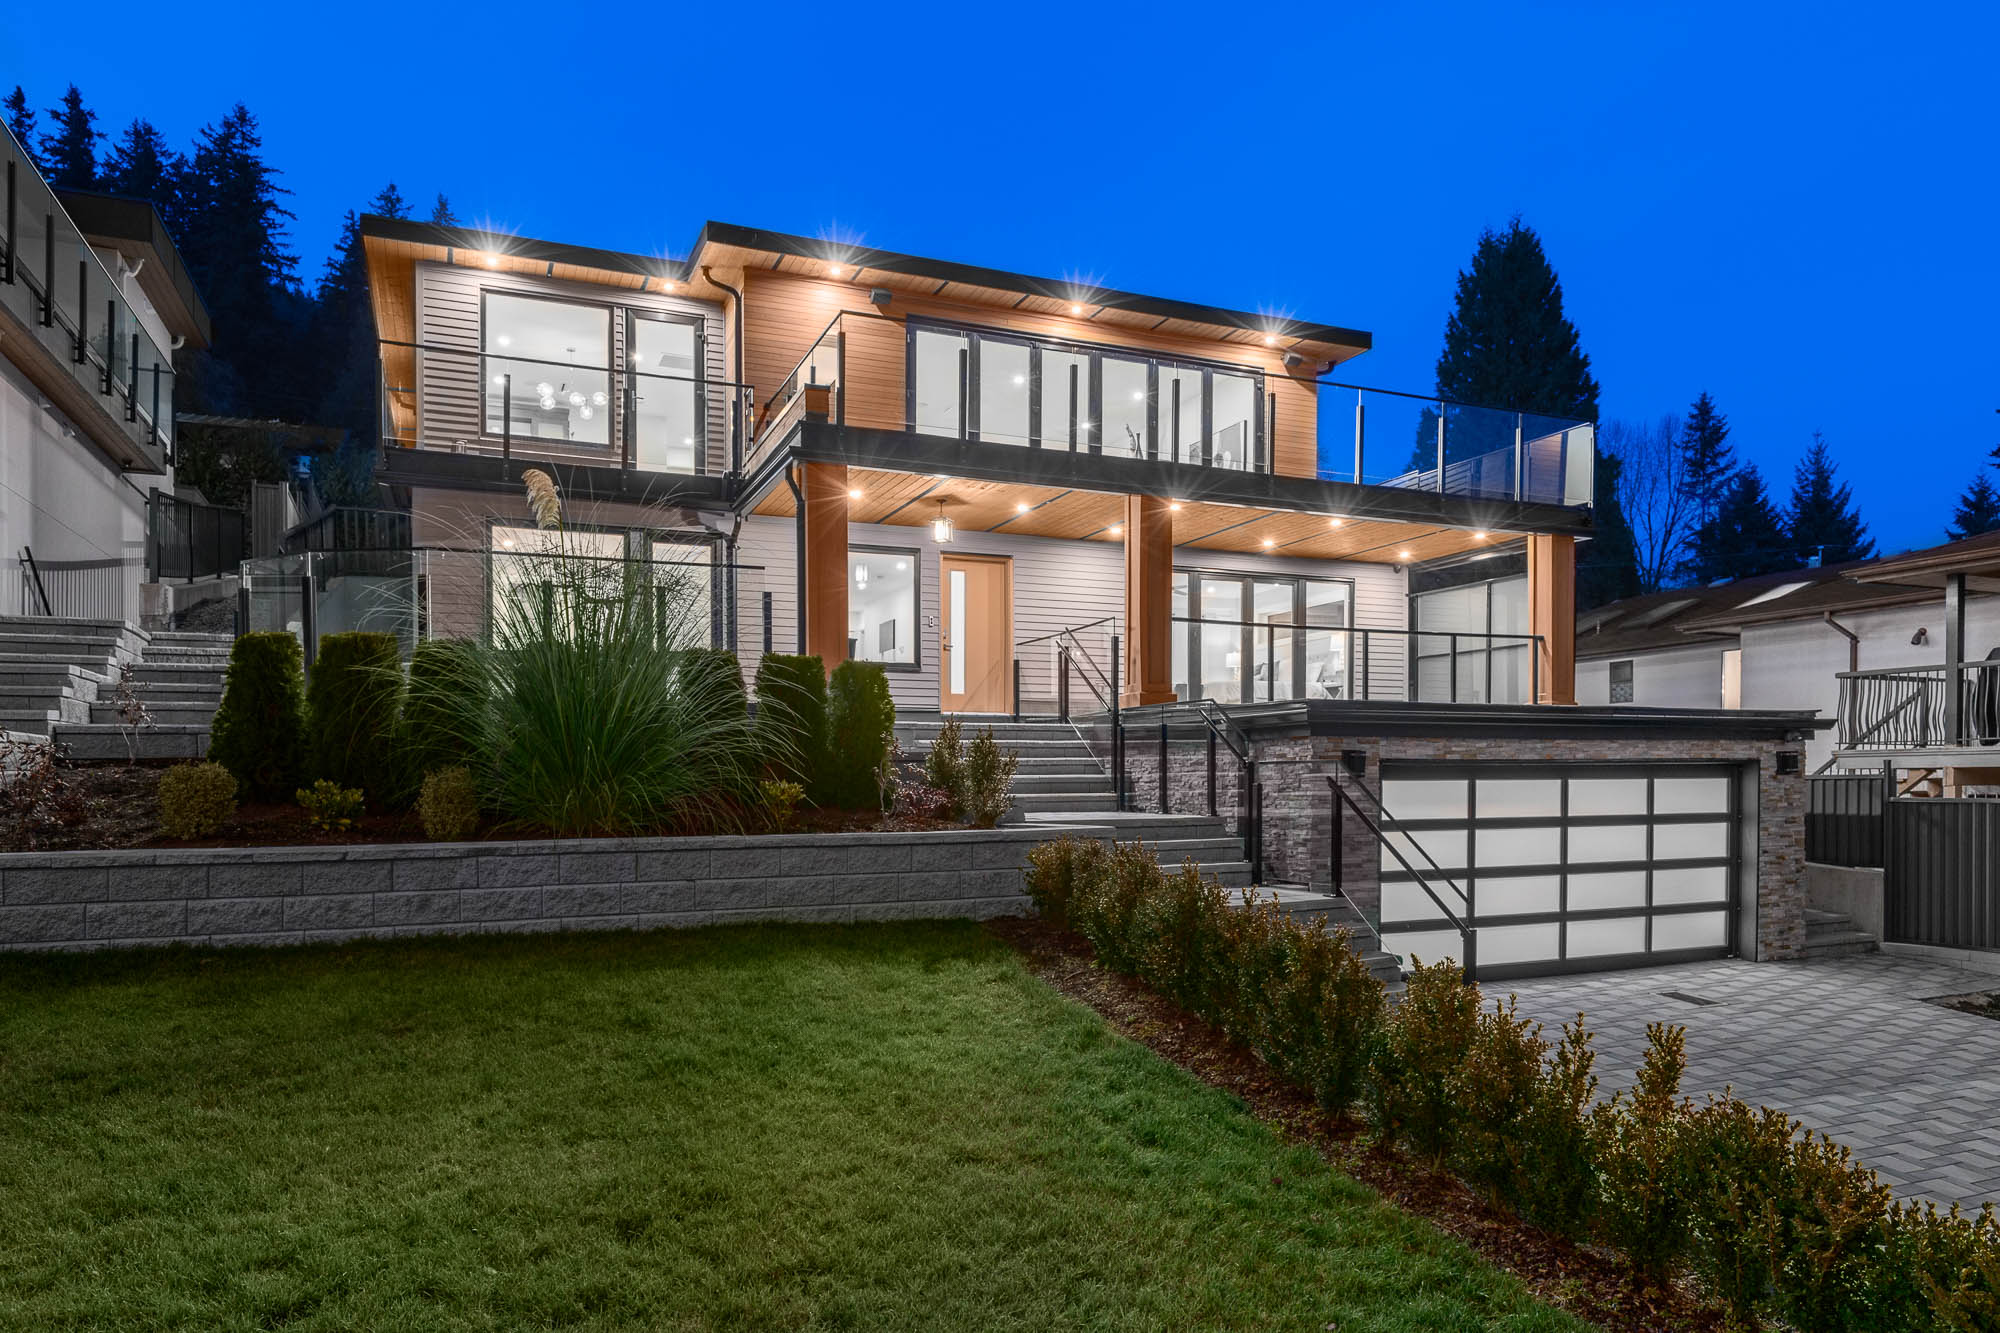 Major-Homes-NorthVancouver-Custom-Built-Home-29